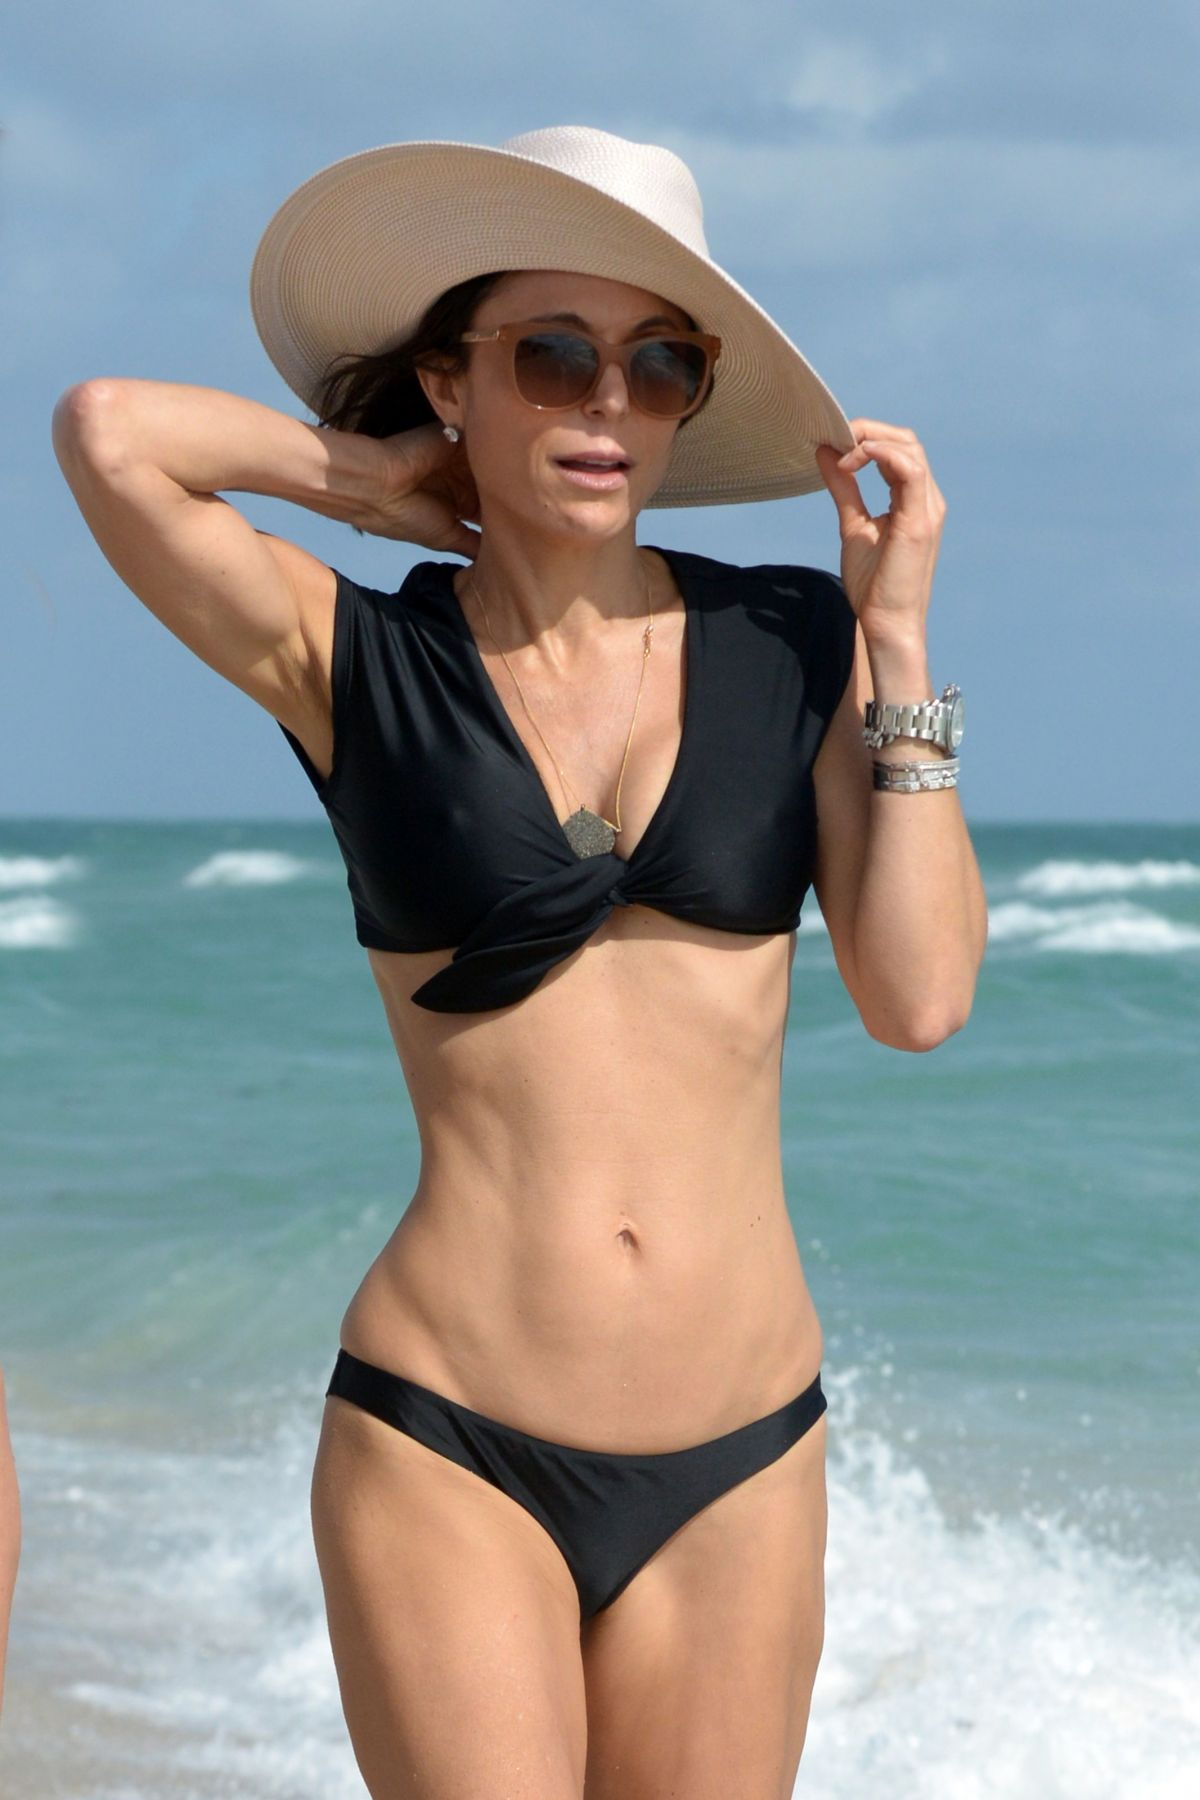 BETHENNY FRANKEL in Bikini on the Beach in Miami 12/05/2016   bethenny-frankel-in-bikini-on-the-beach-in-miami-12-05-2016_43